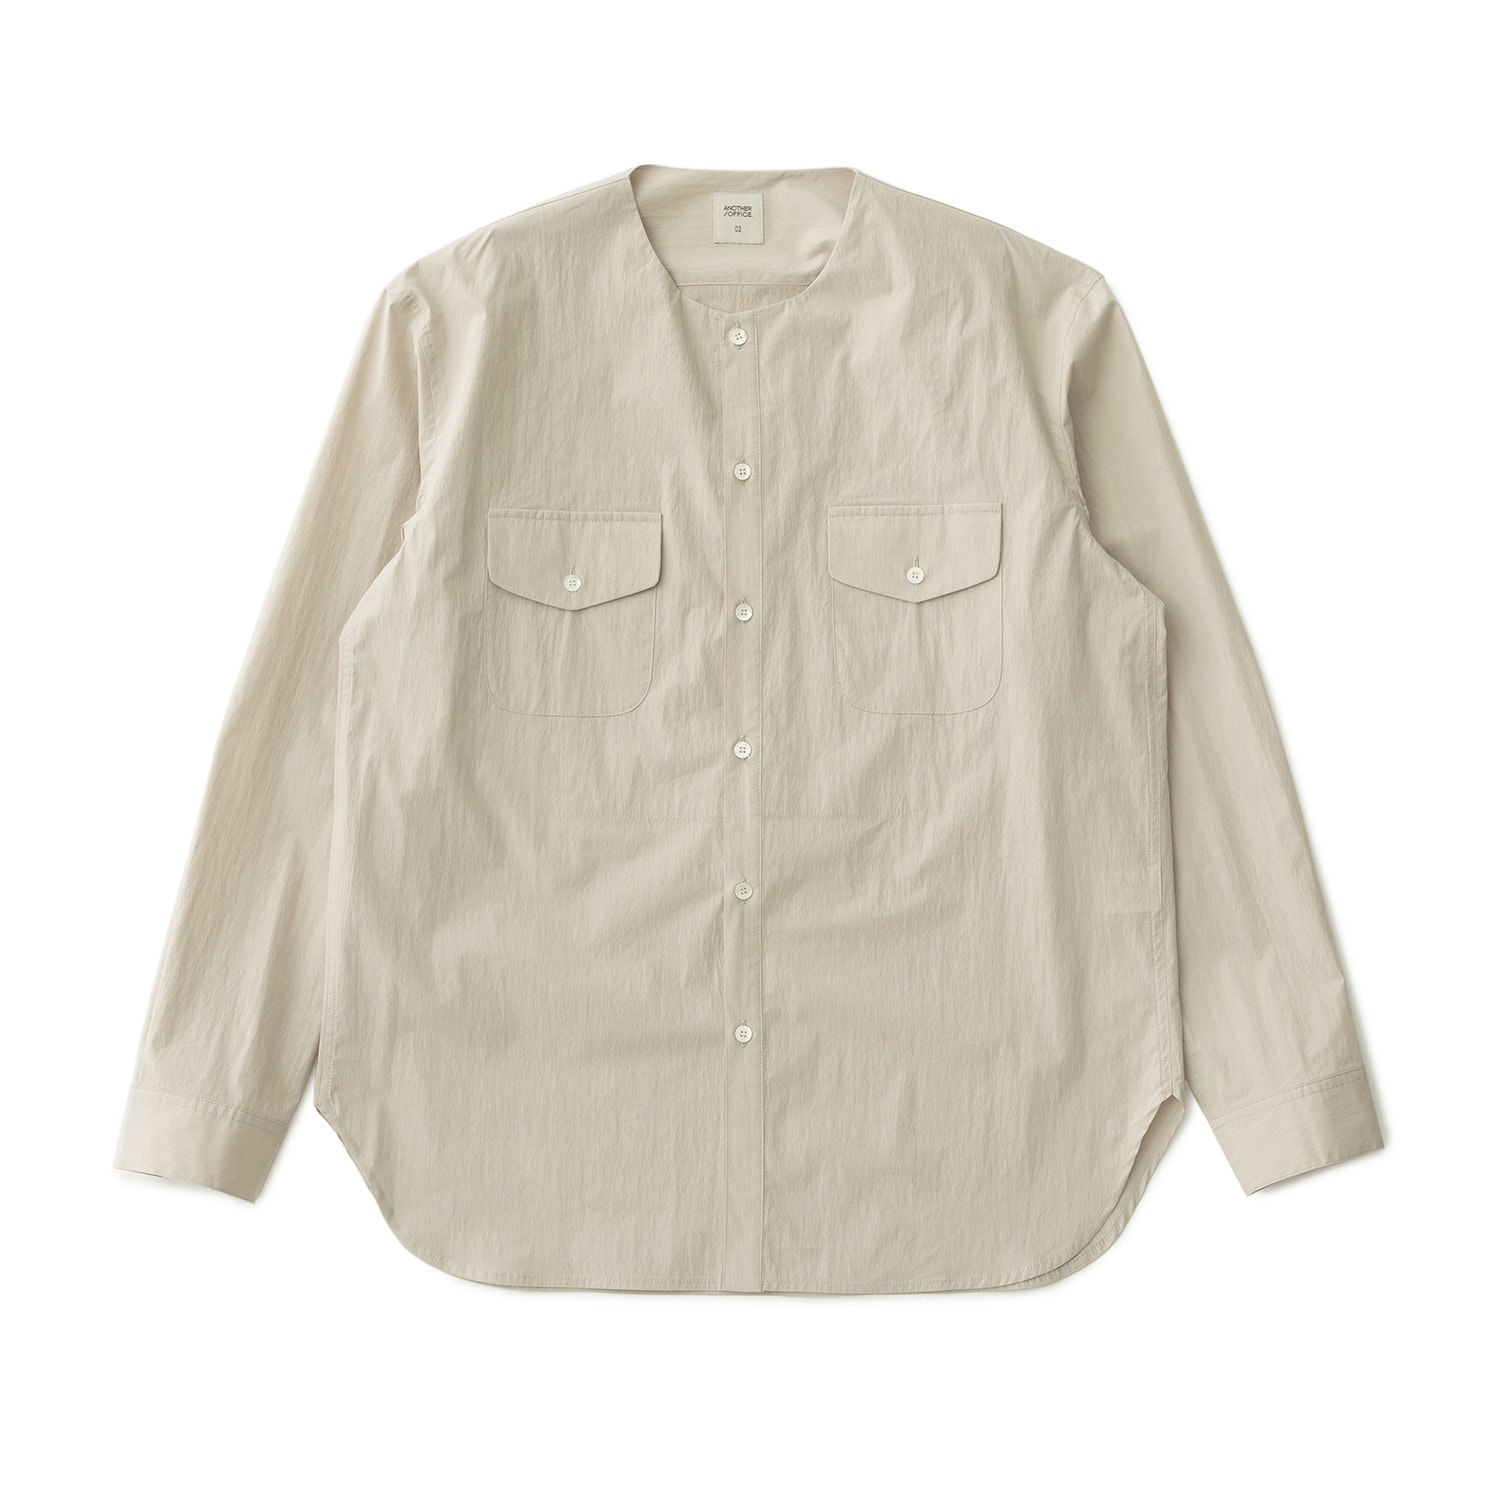 A/O 21SS Layer Round-neck Shirt (Oatmeal)